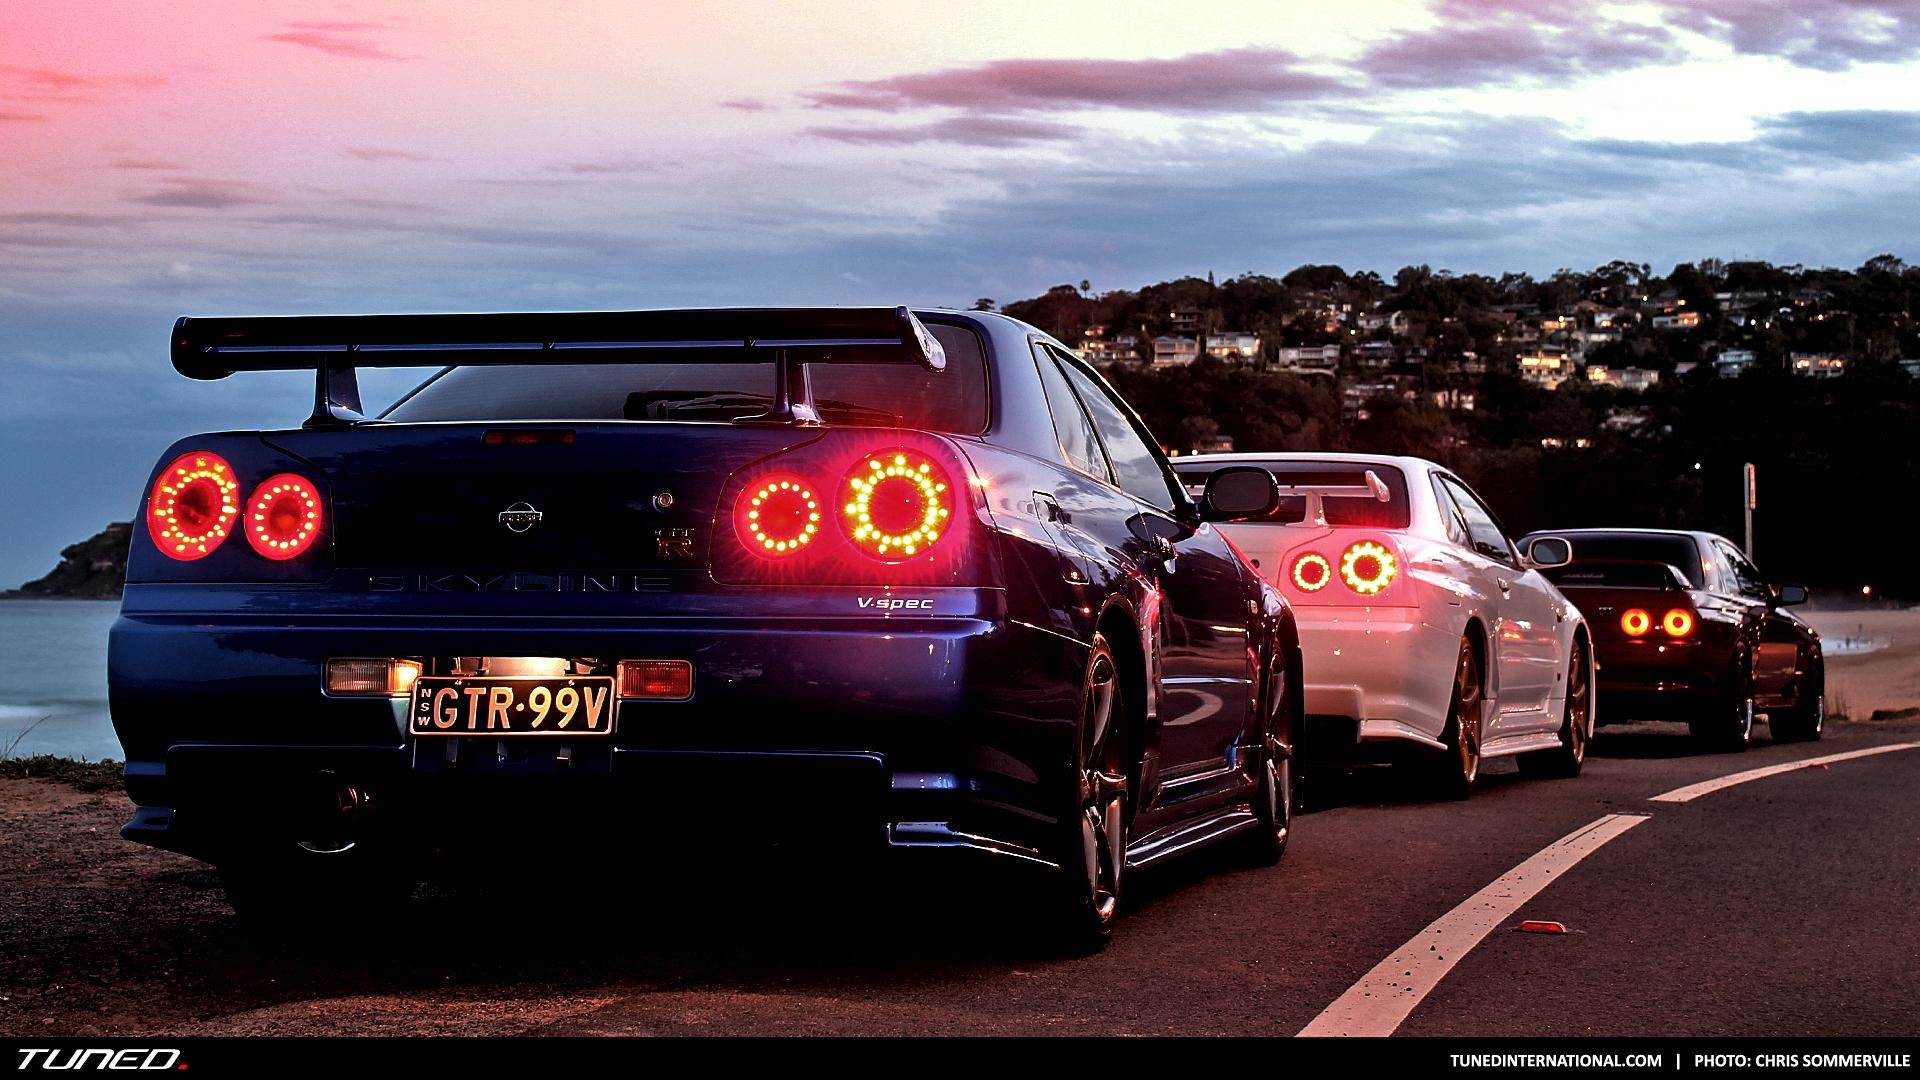 1920x1080 undefined Nissan Cars Wallpapers (46 Wallpapers) | Adorable Wallpapers